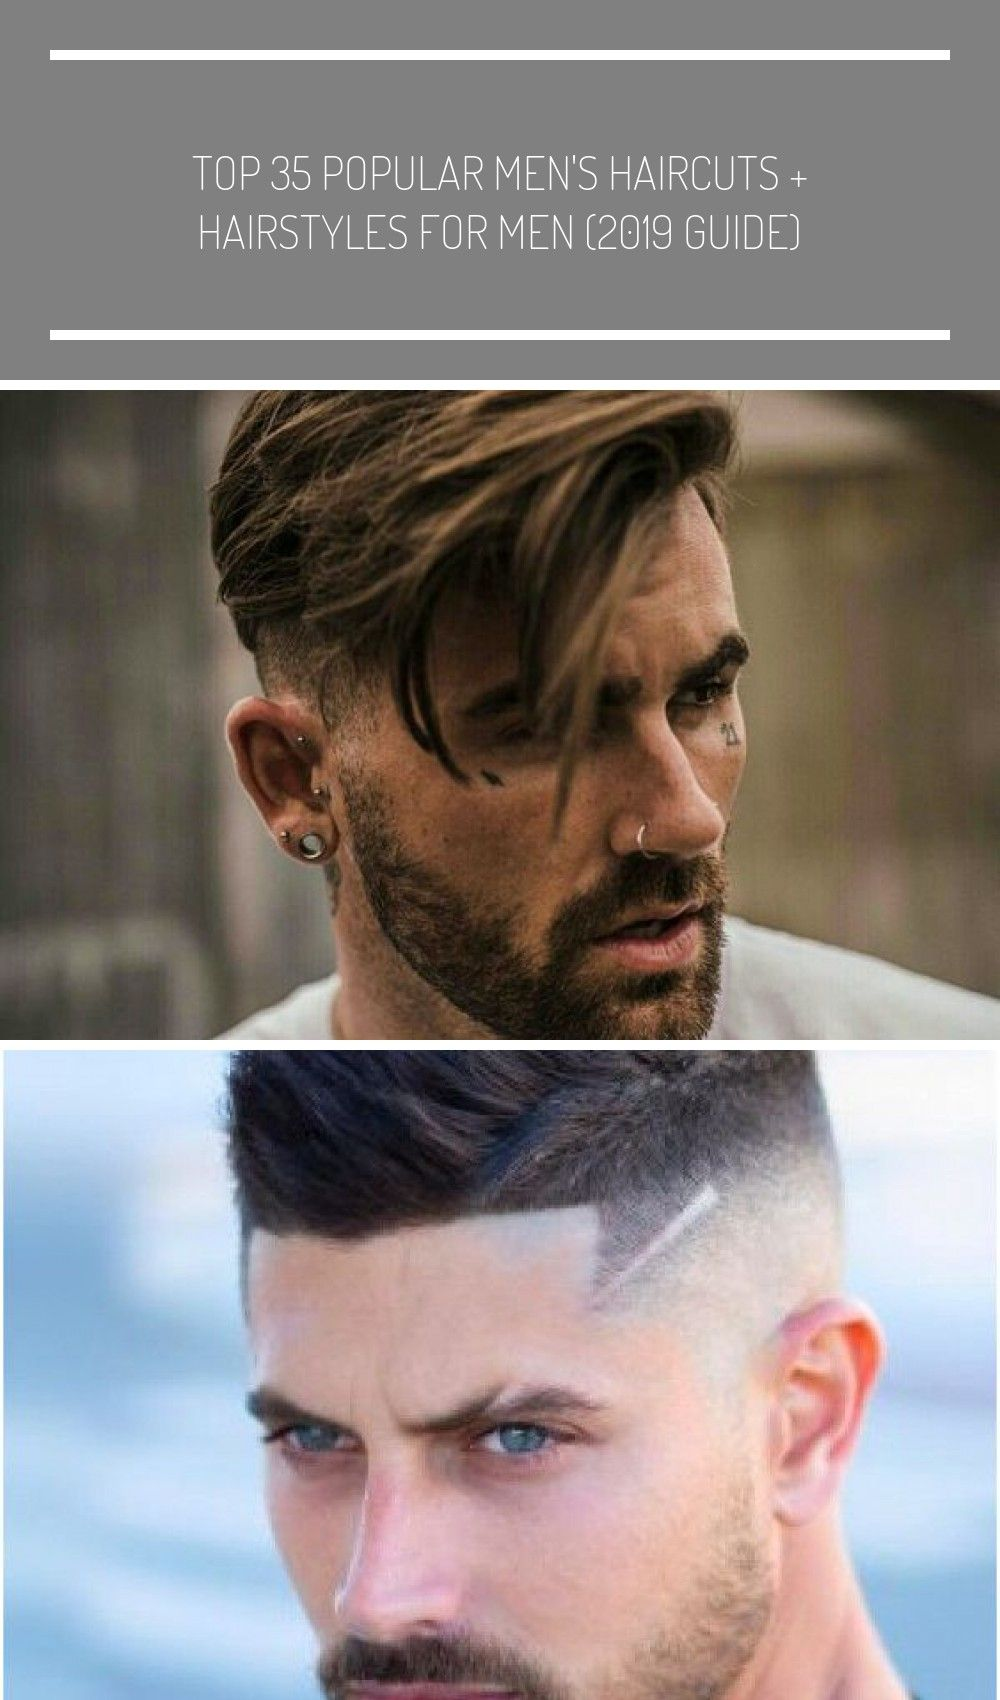 Short Fade Haircut on the Sides and Back with Long Side Swept Hair on Top Best Haircuts For Men Cool Mens Hairstyles To Get Right Now  Short Medium and Long Hair Guys for...